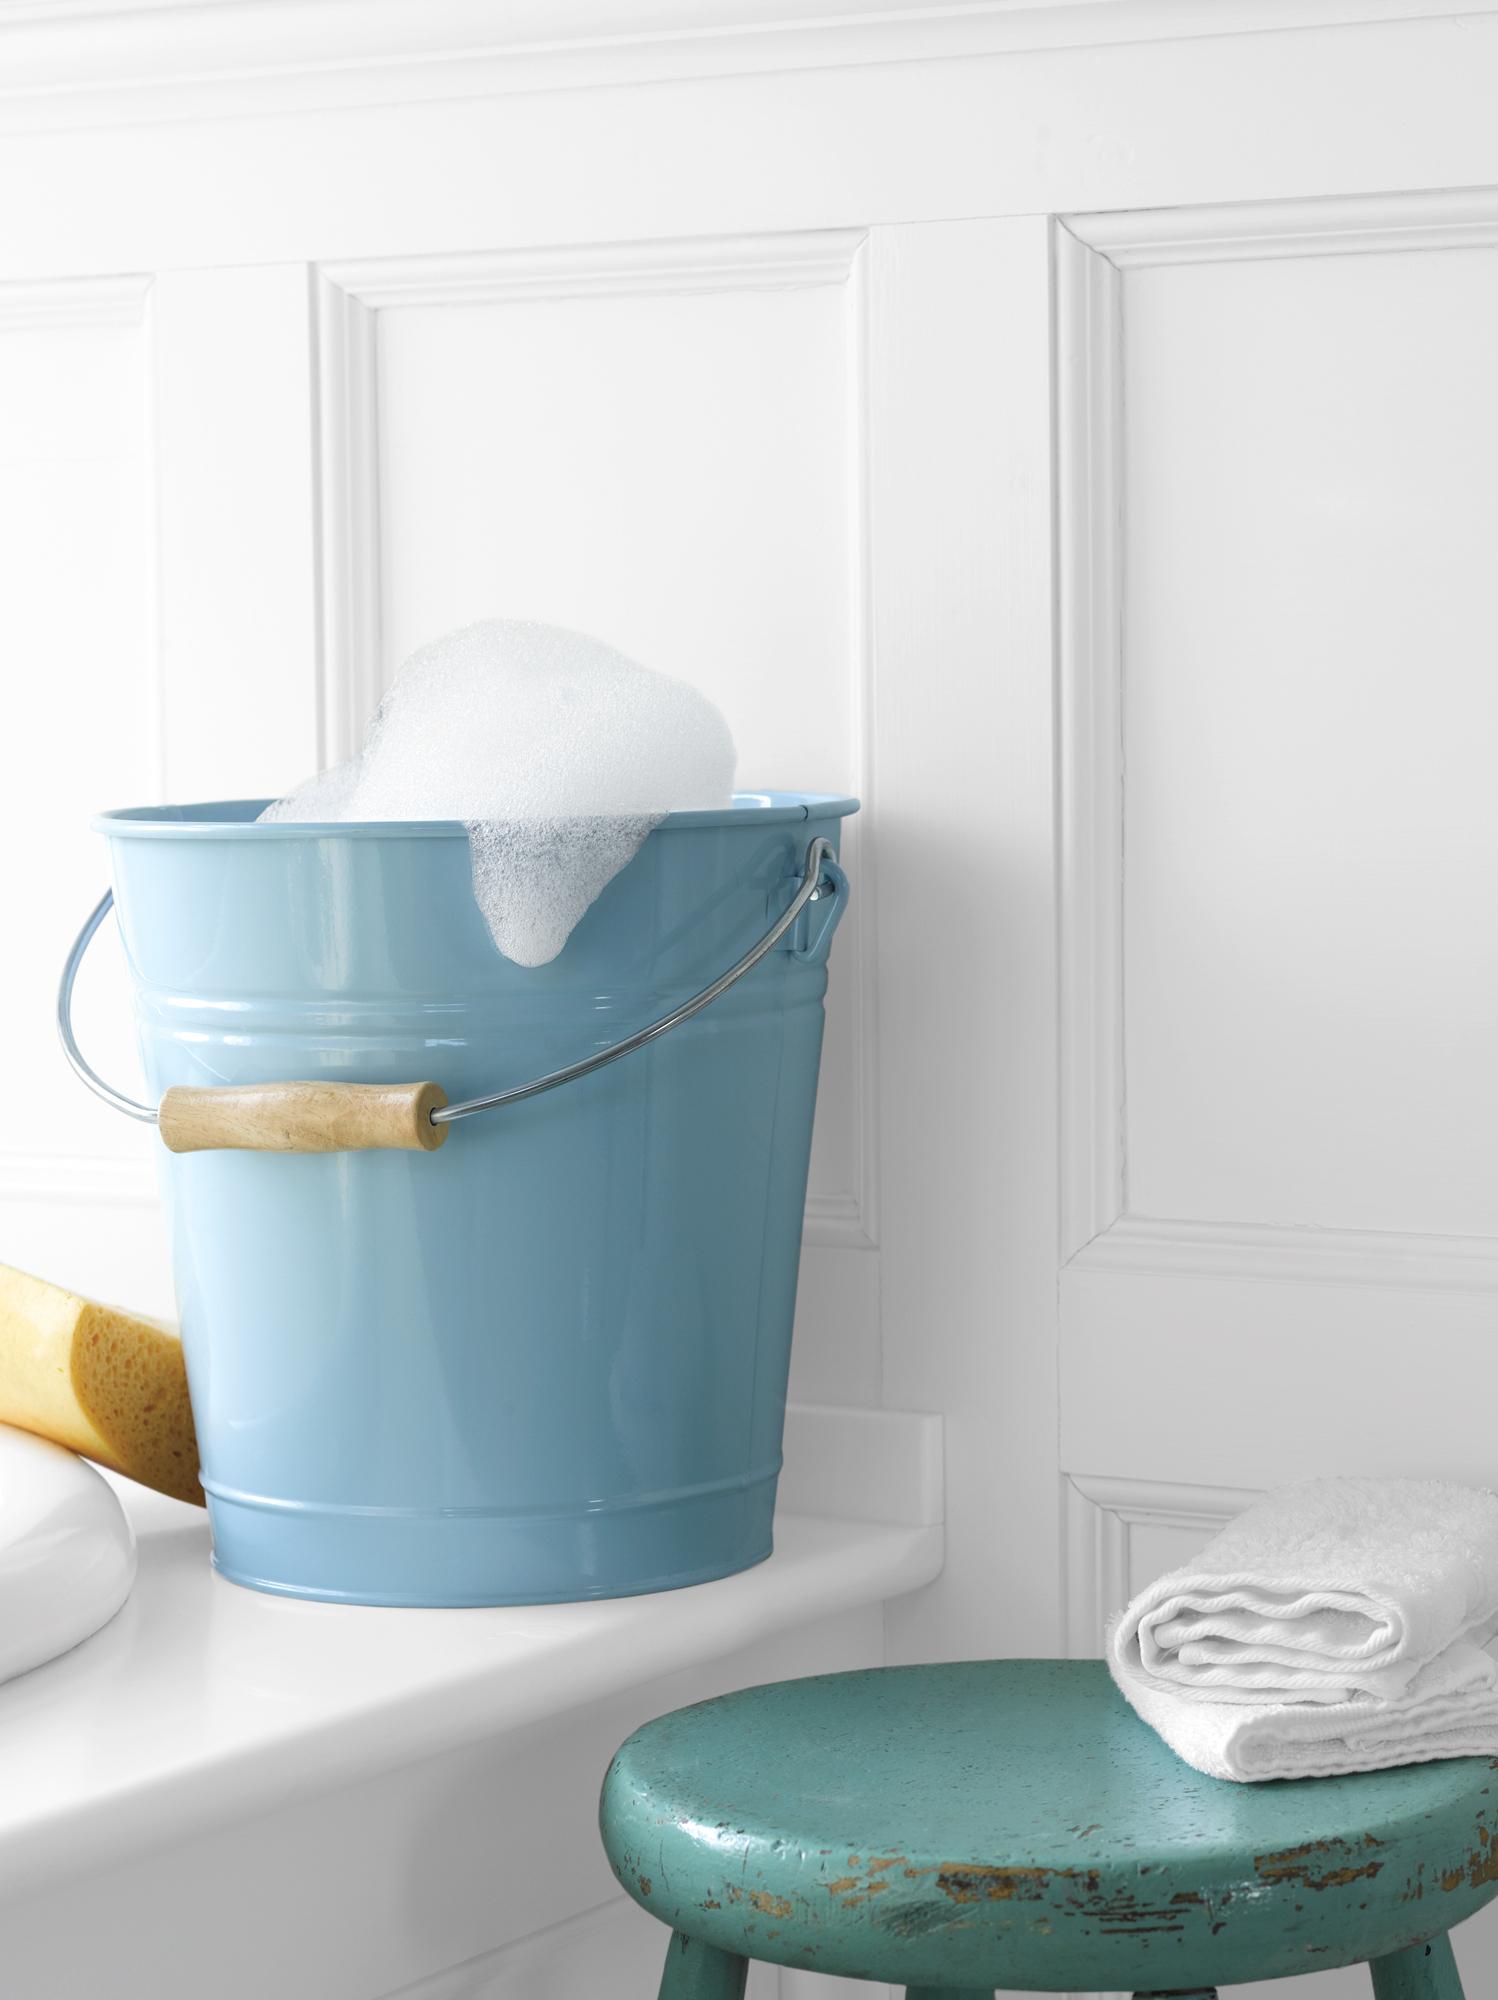 Pale blue bucket with suds